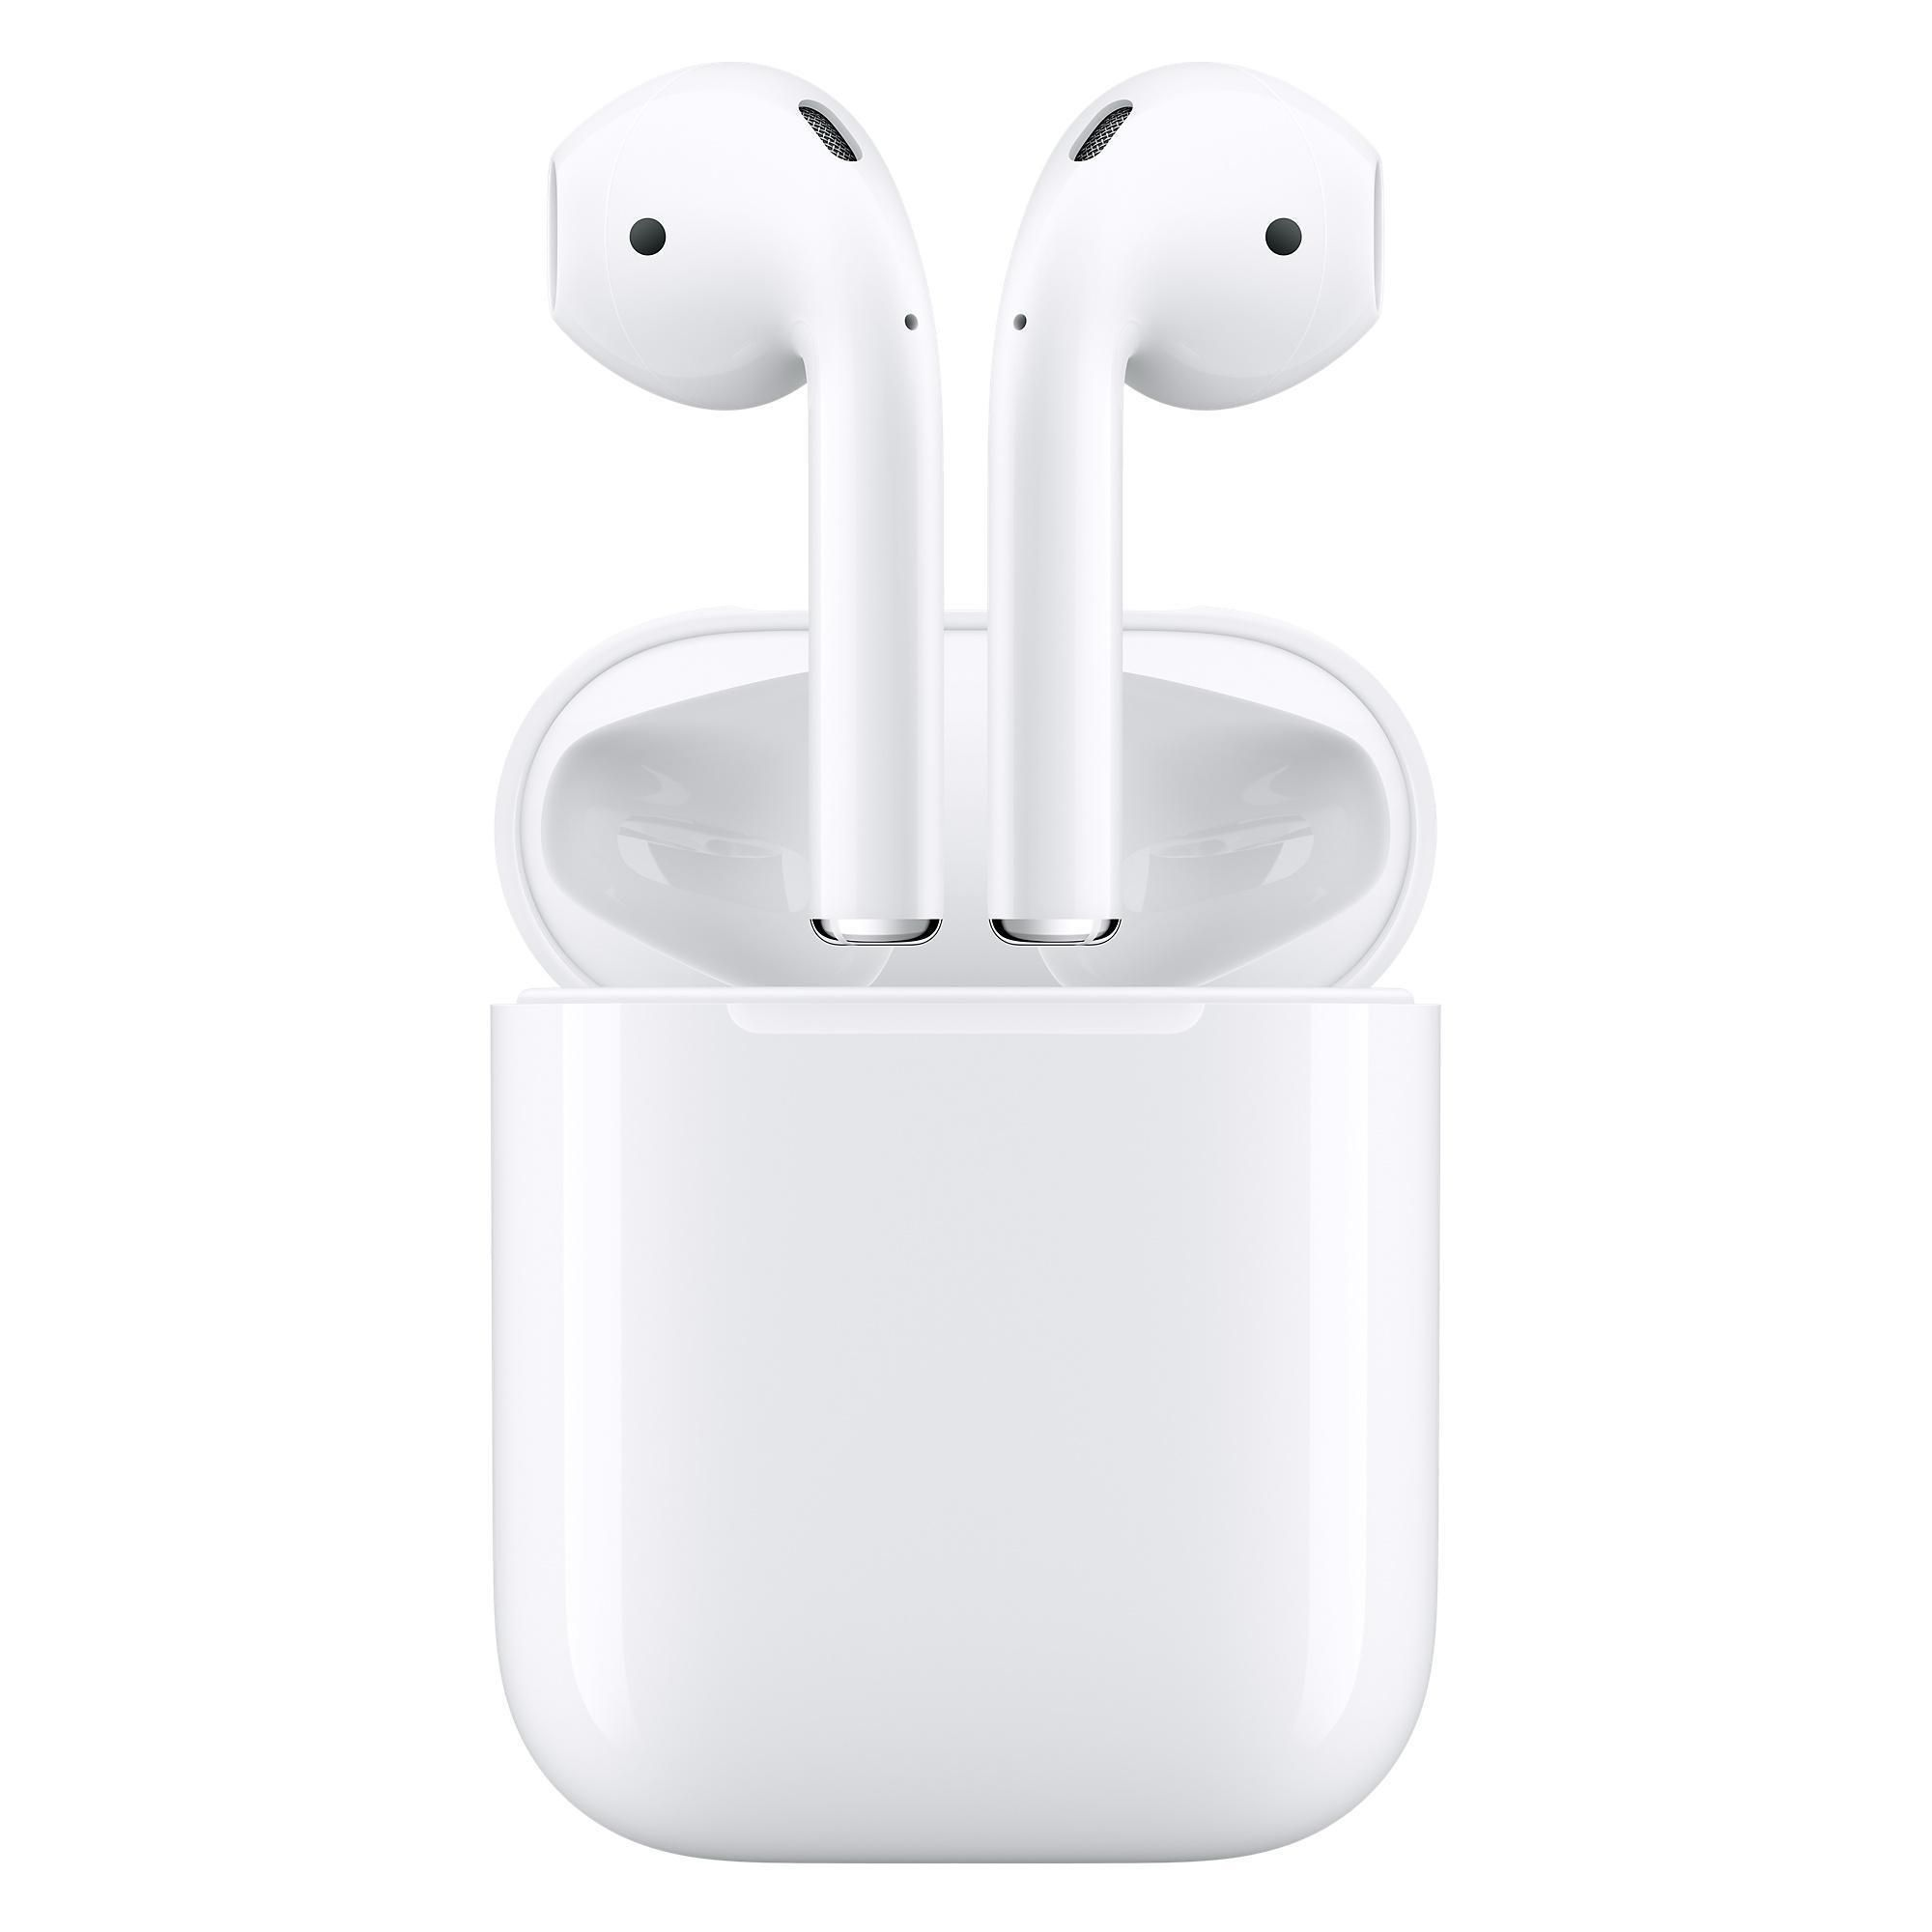 Airpods 1st Gen With Charging Case White Apple Headphone Wireless Earphones Wireless Earbuds